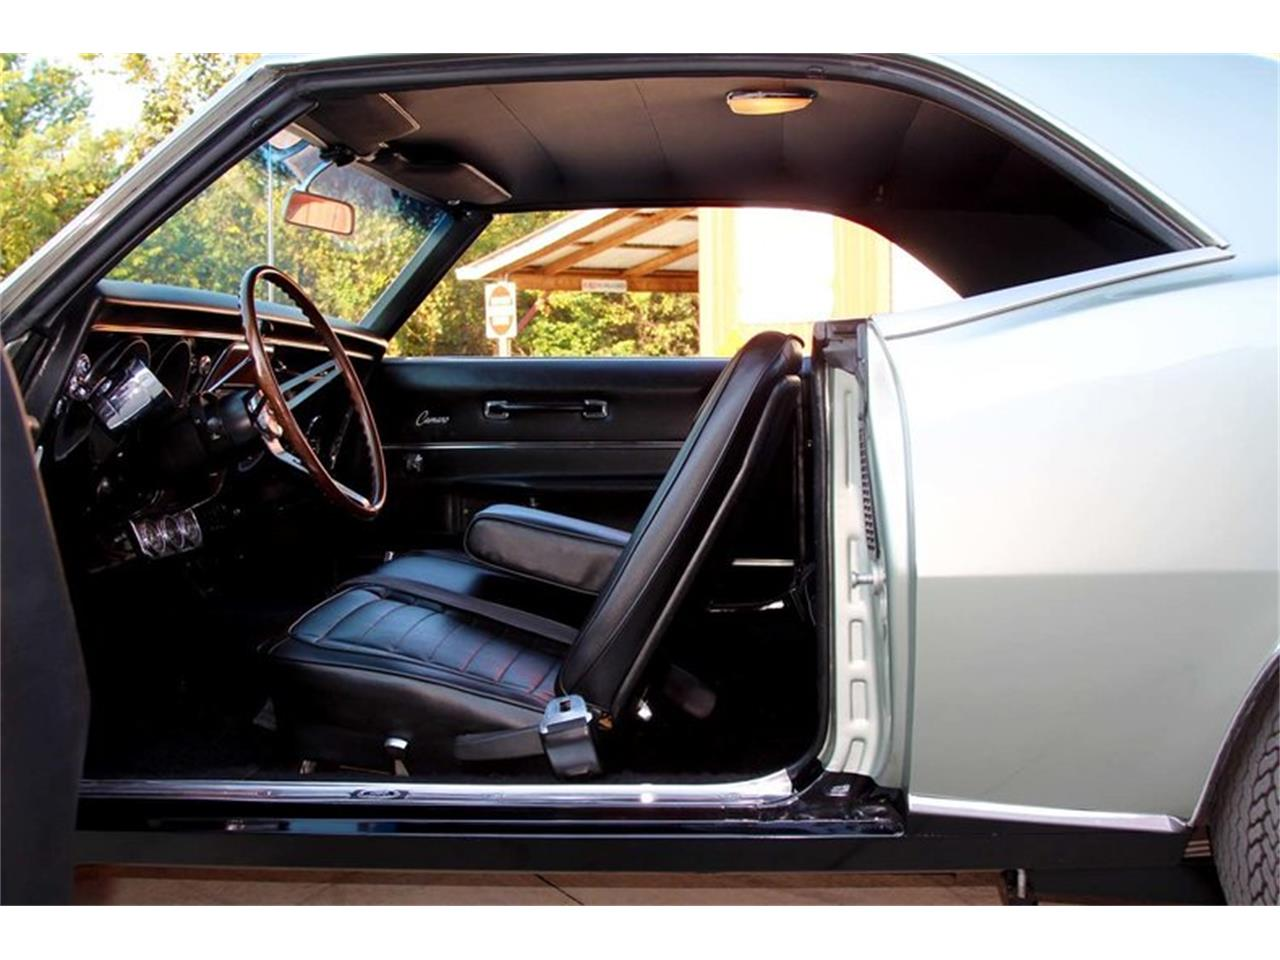 Large Picture of '68 Camaro located in Tennessee - $174,995.00 - N6SC